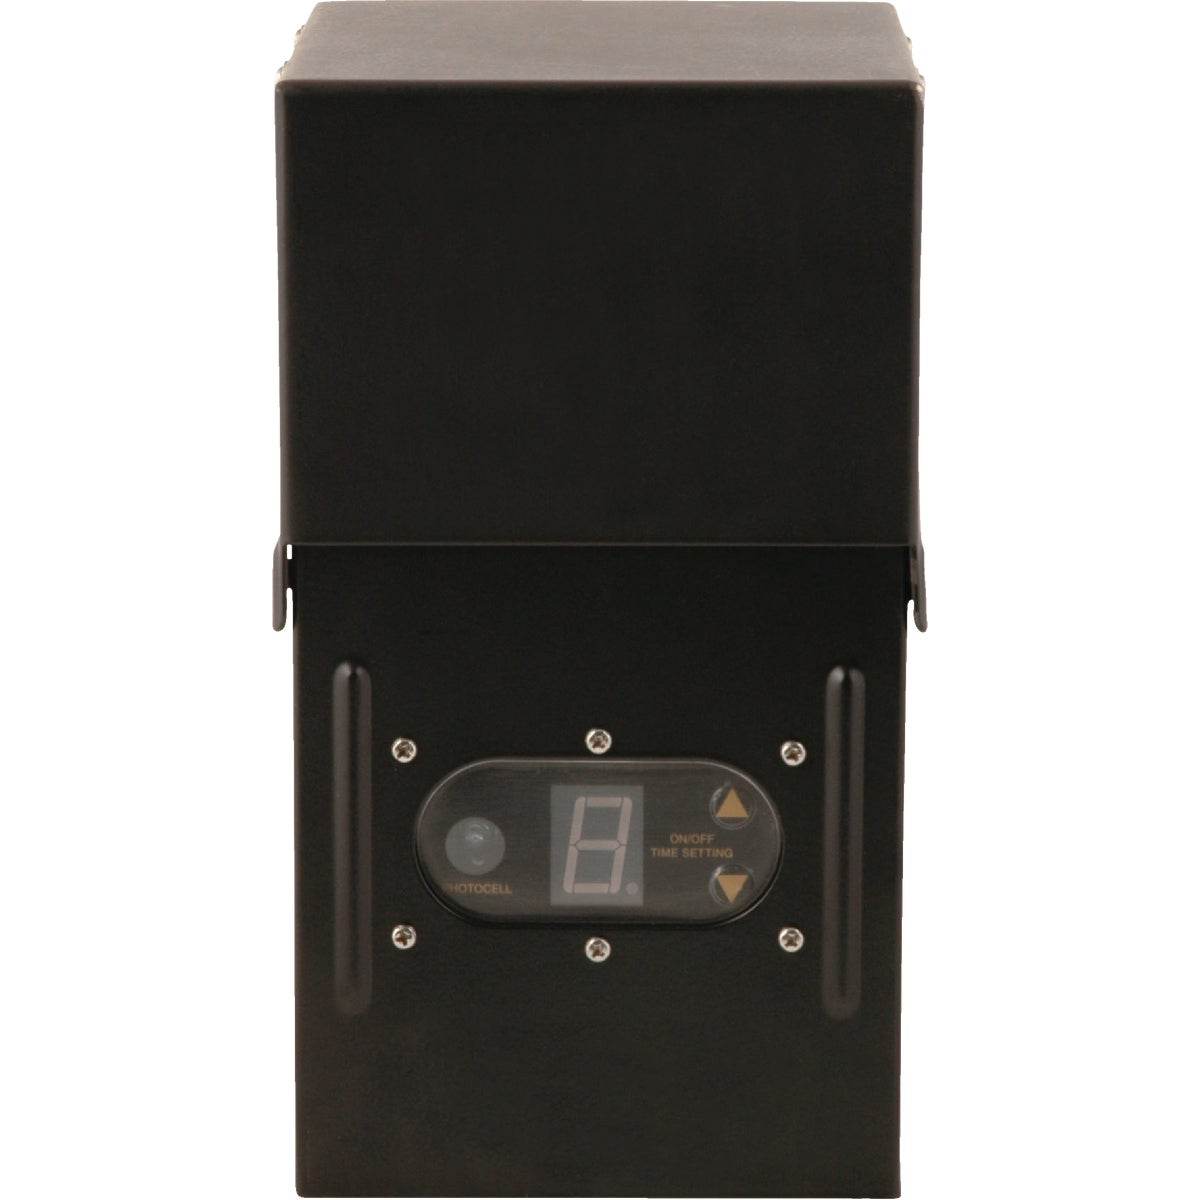 POWERPACK/TIMER - 95432 by Woods Wire Coleman